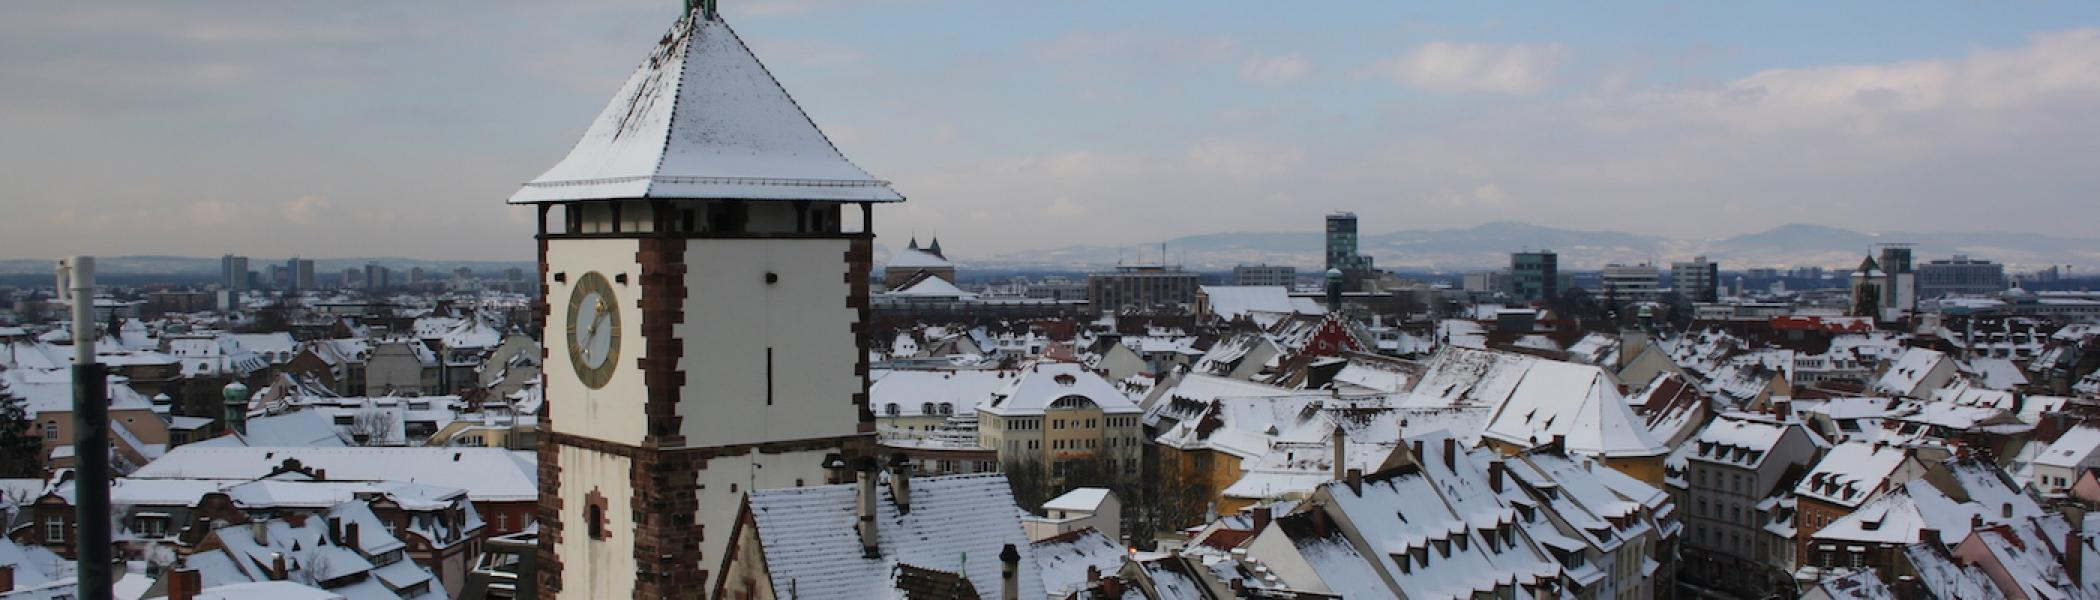 A view from the top of a tower in Germany in the winter.